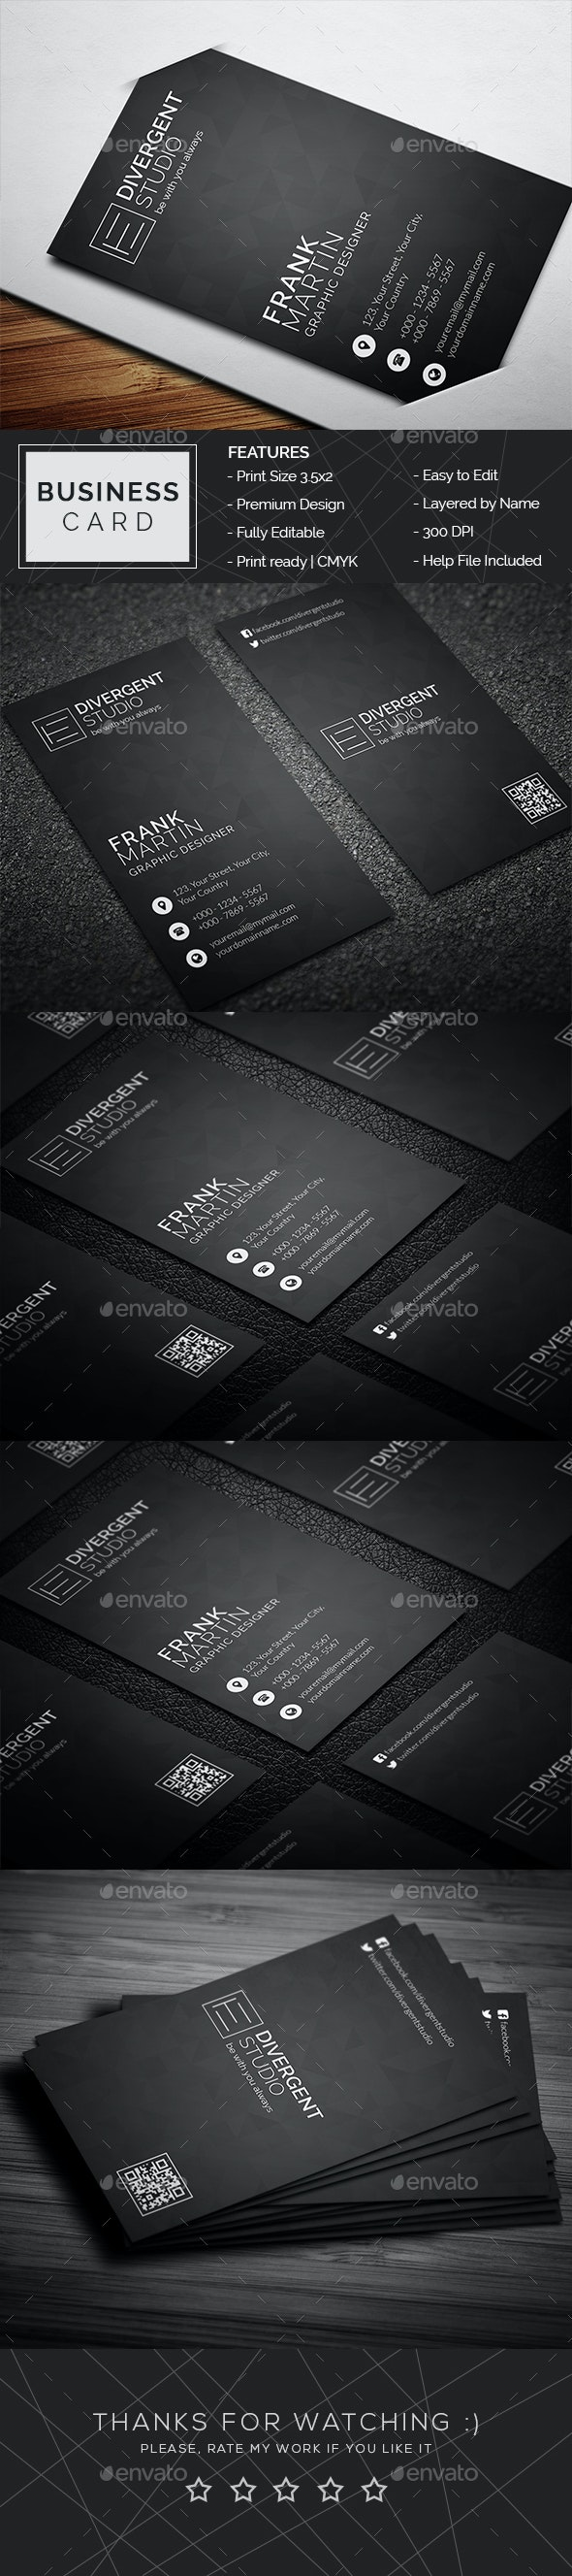 Minimal Business Card - Business Cards Print Templates